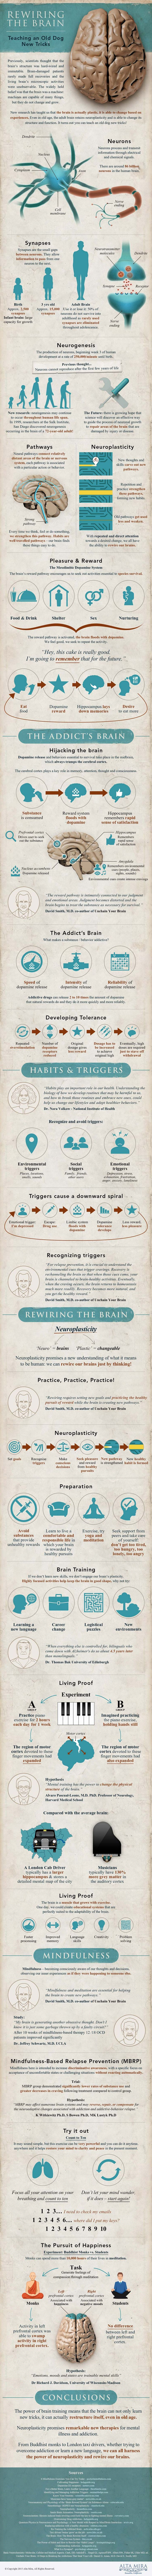 Why do I keep talking about rewiring the brain to achieve health and fitness? Because without that process, it's HARD! Plus, any progress towards improved health and fitness is temporary at b…